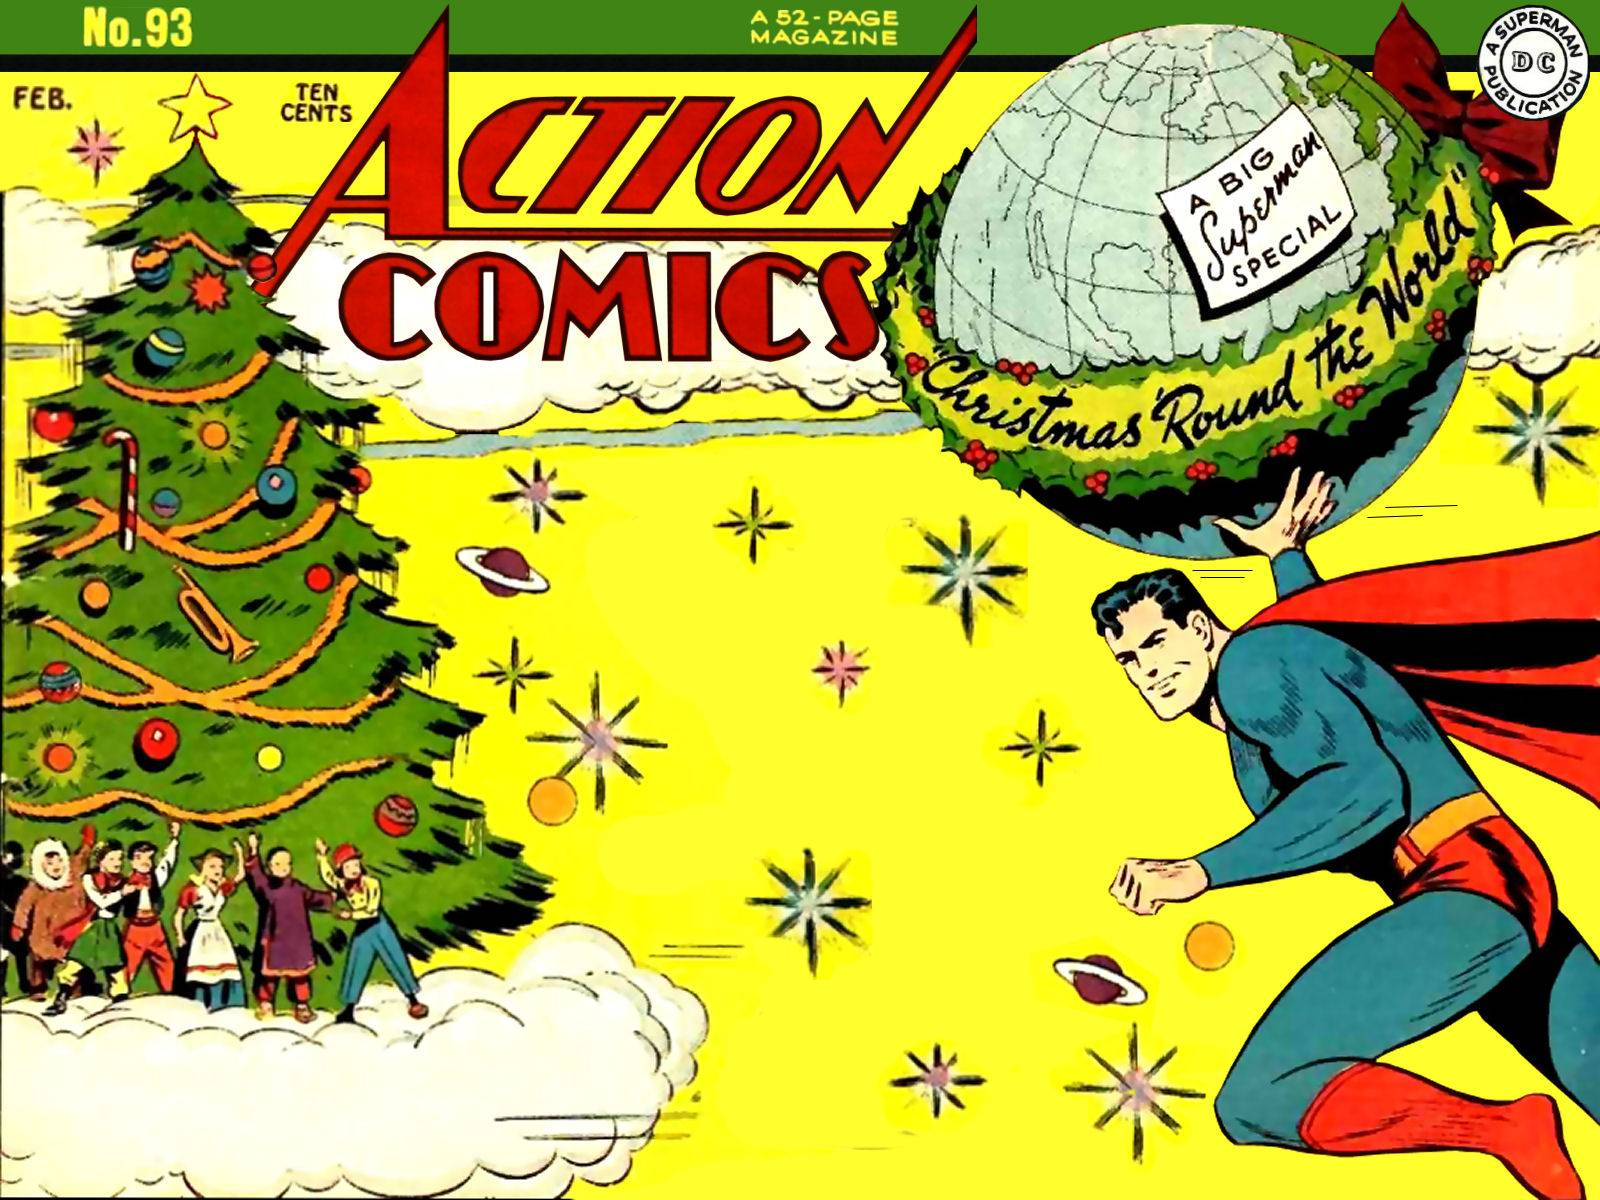 Bloody Pit of Rod: DC Comics Says Merry Christmas!